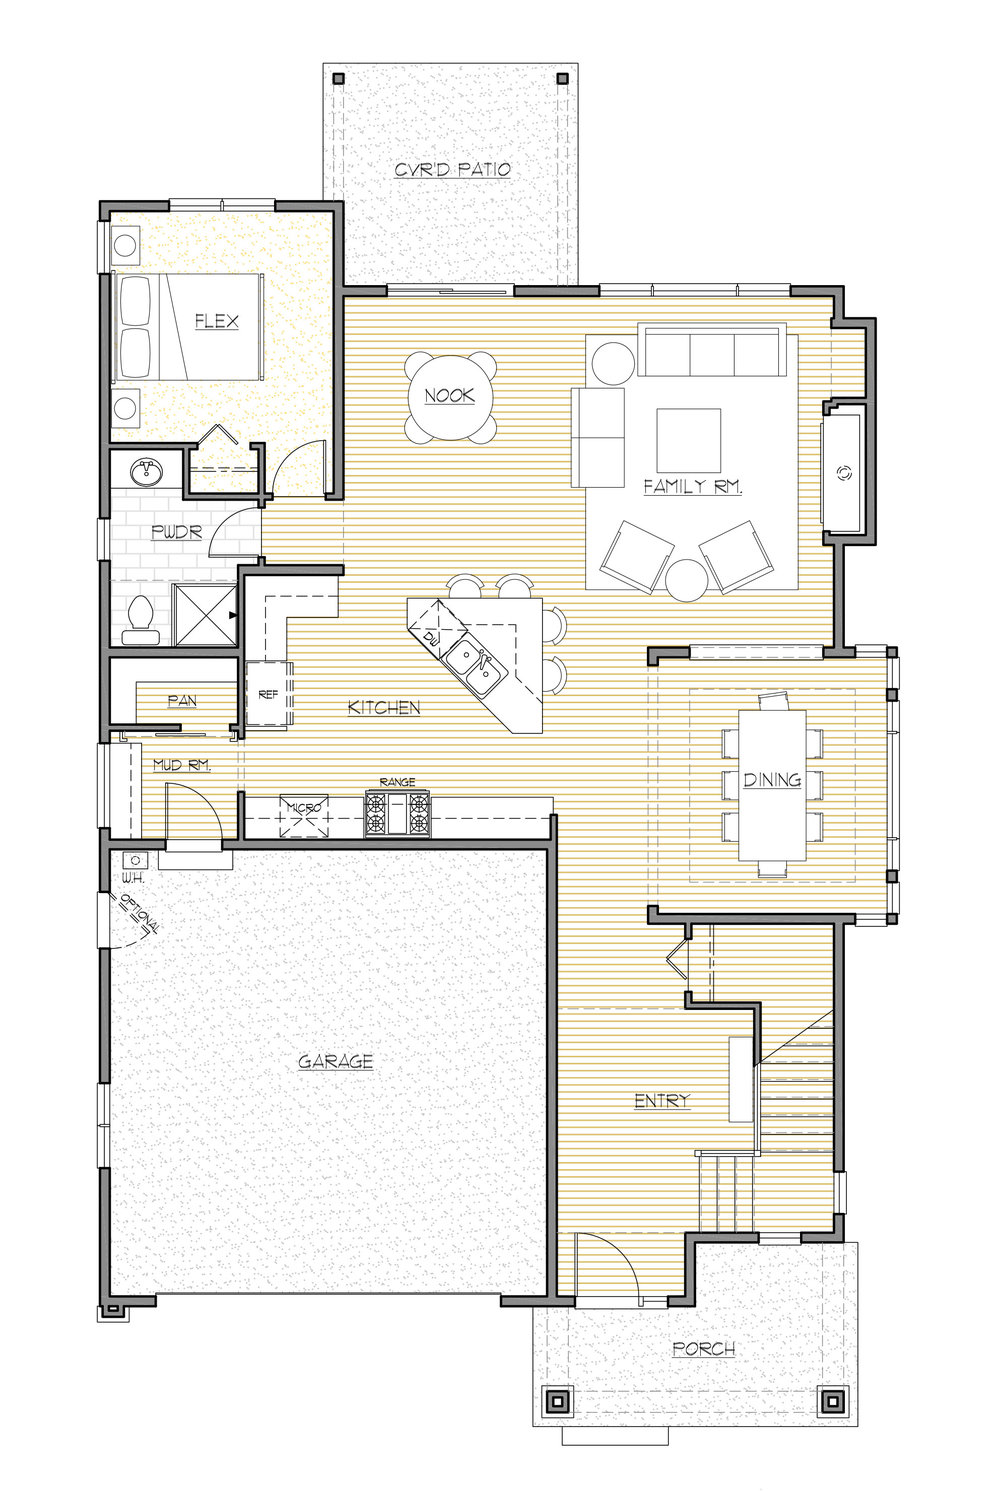 Copy of Main Floor Plan